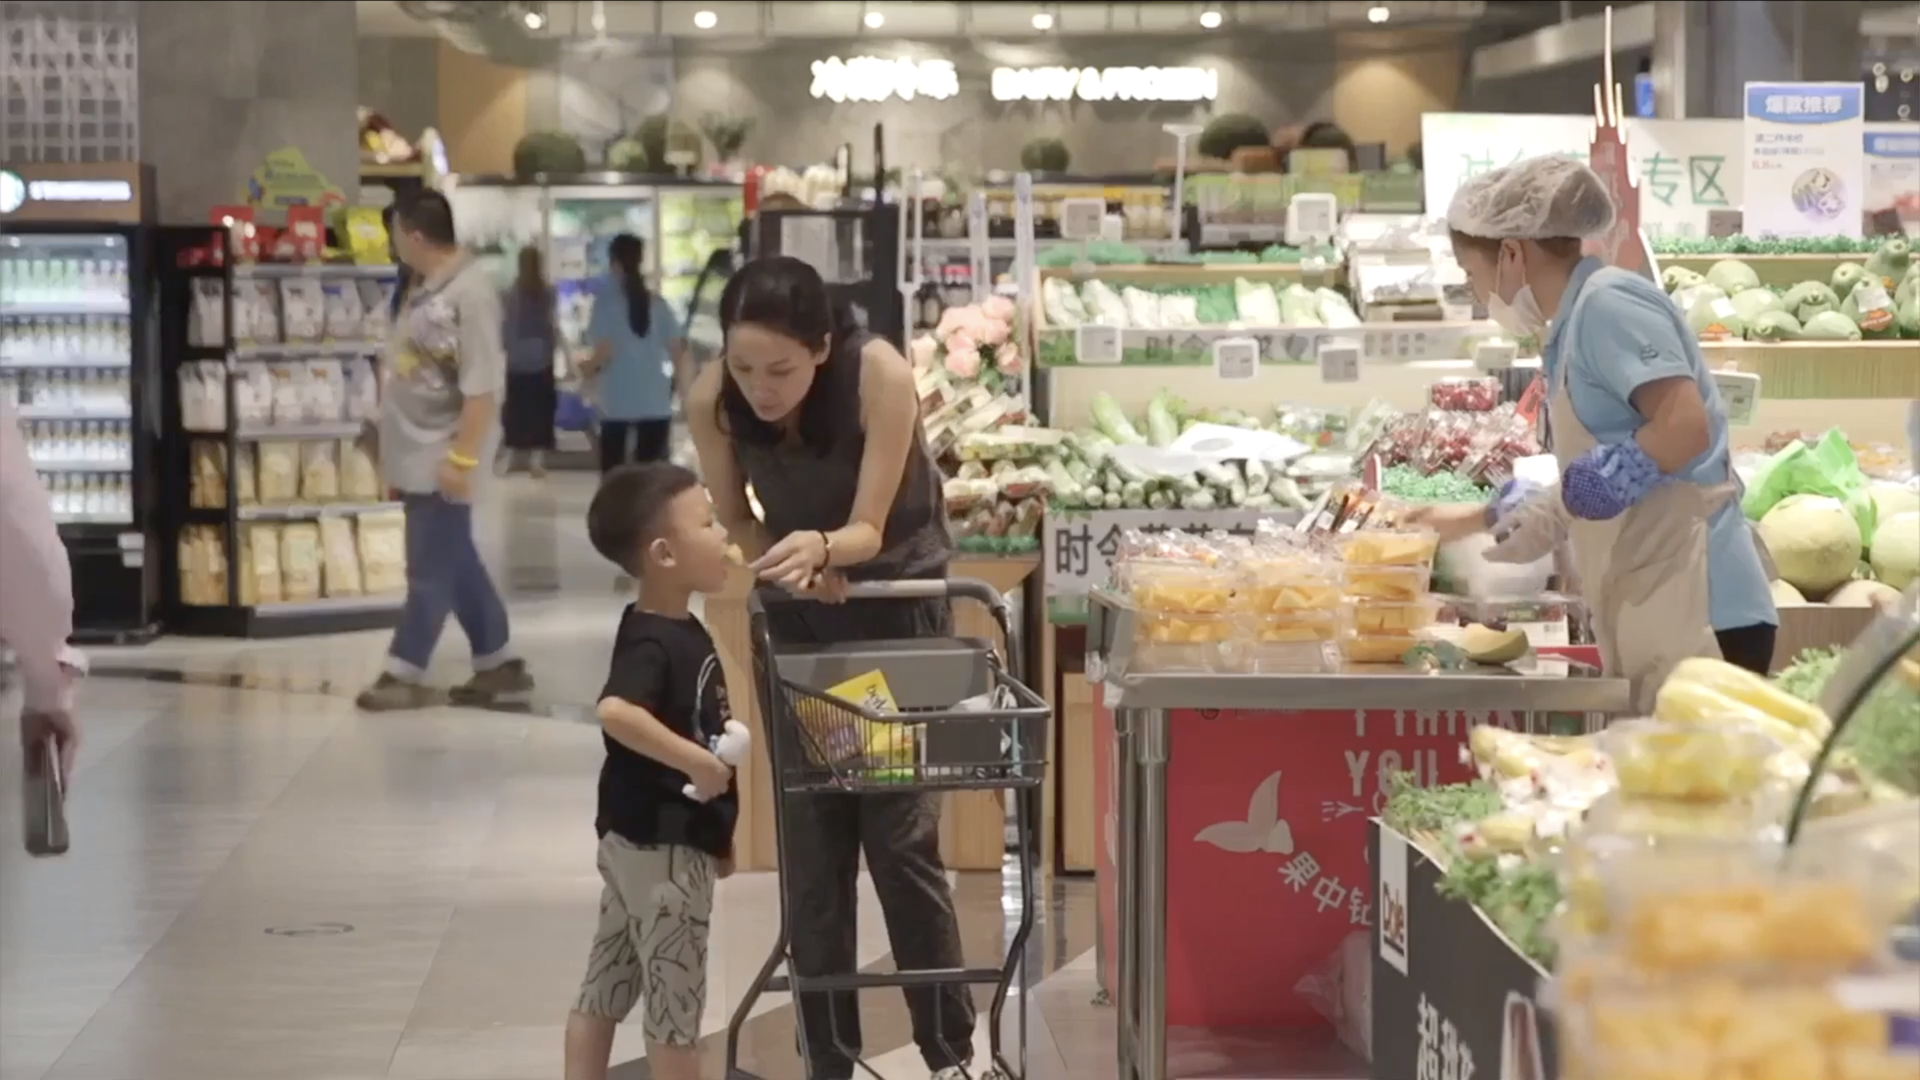 Hema: Reinventing grocery retail